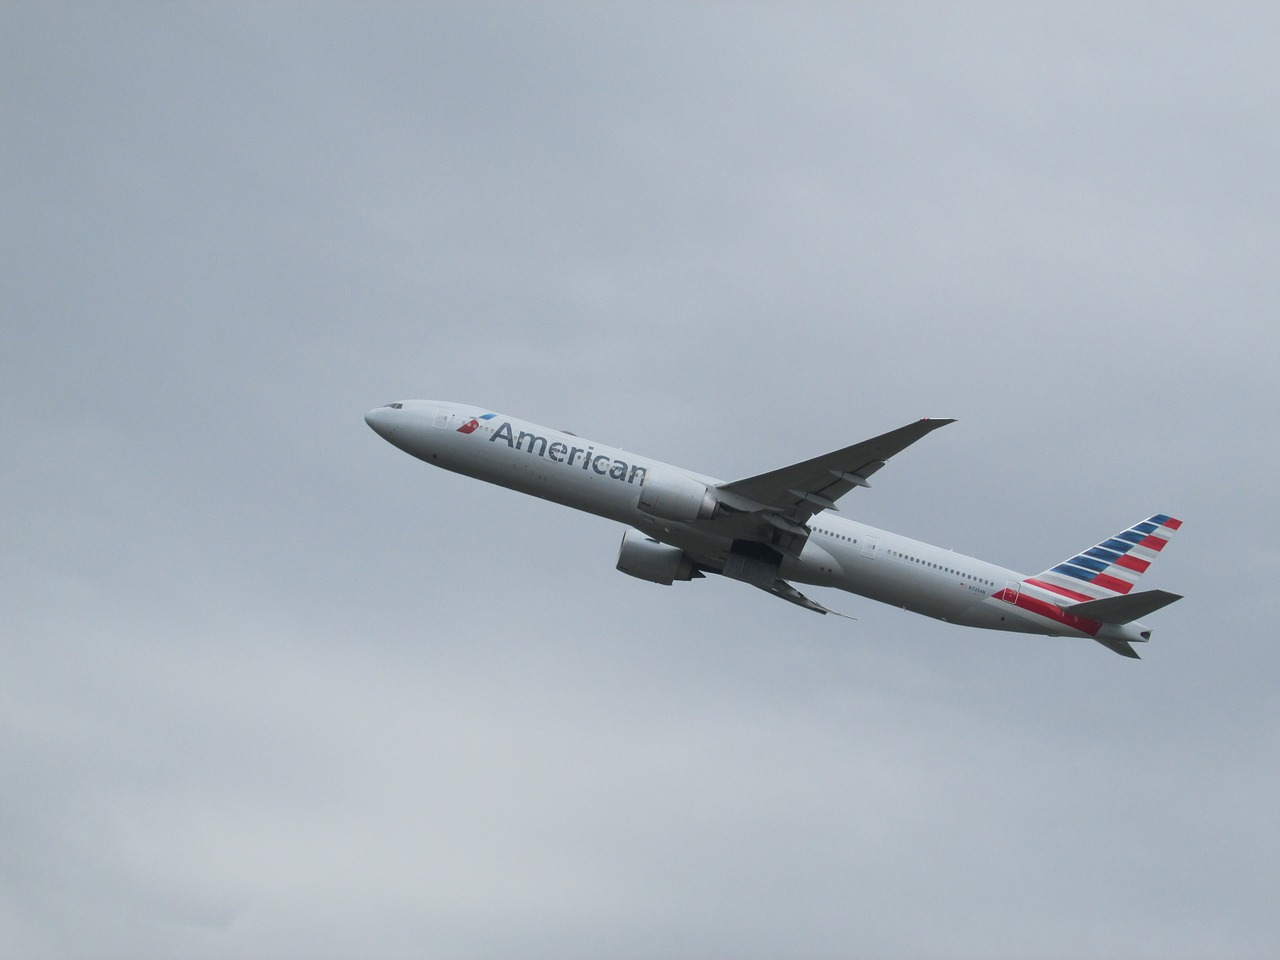 Trip Report: American Airlines 777-300ER Business Class, DFW